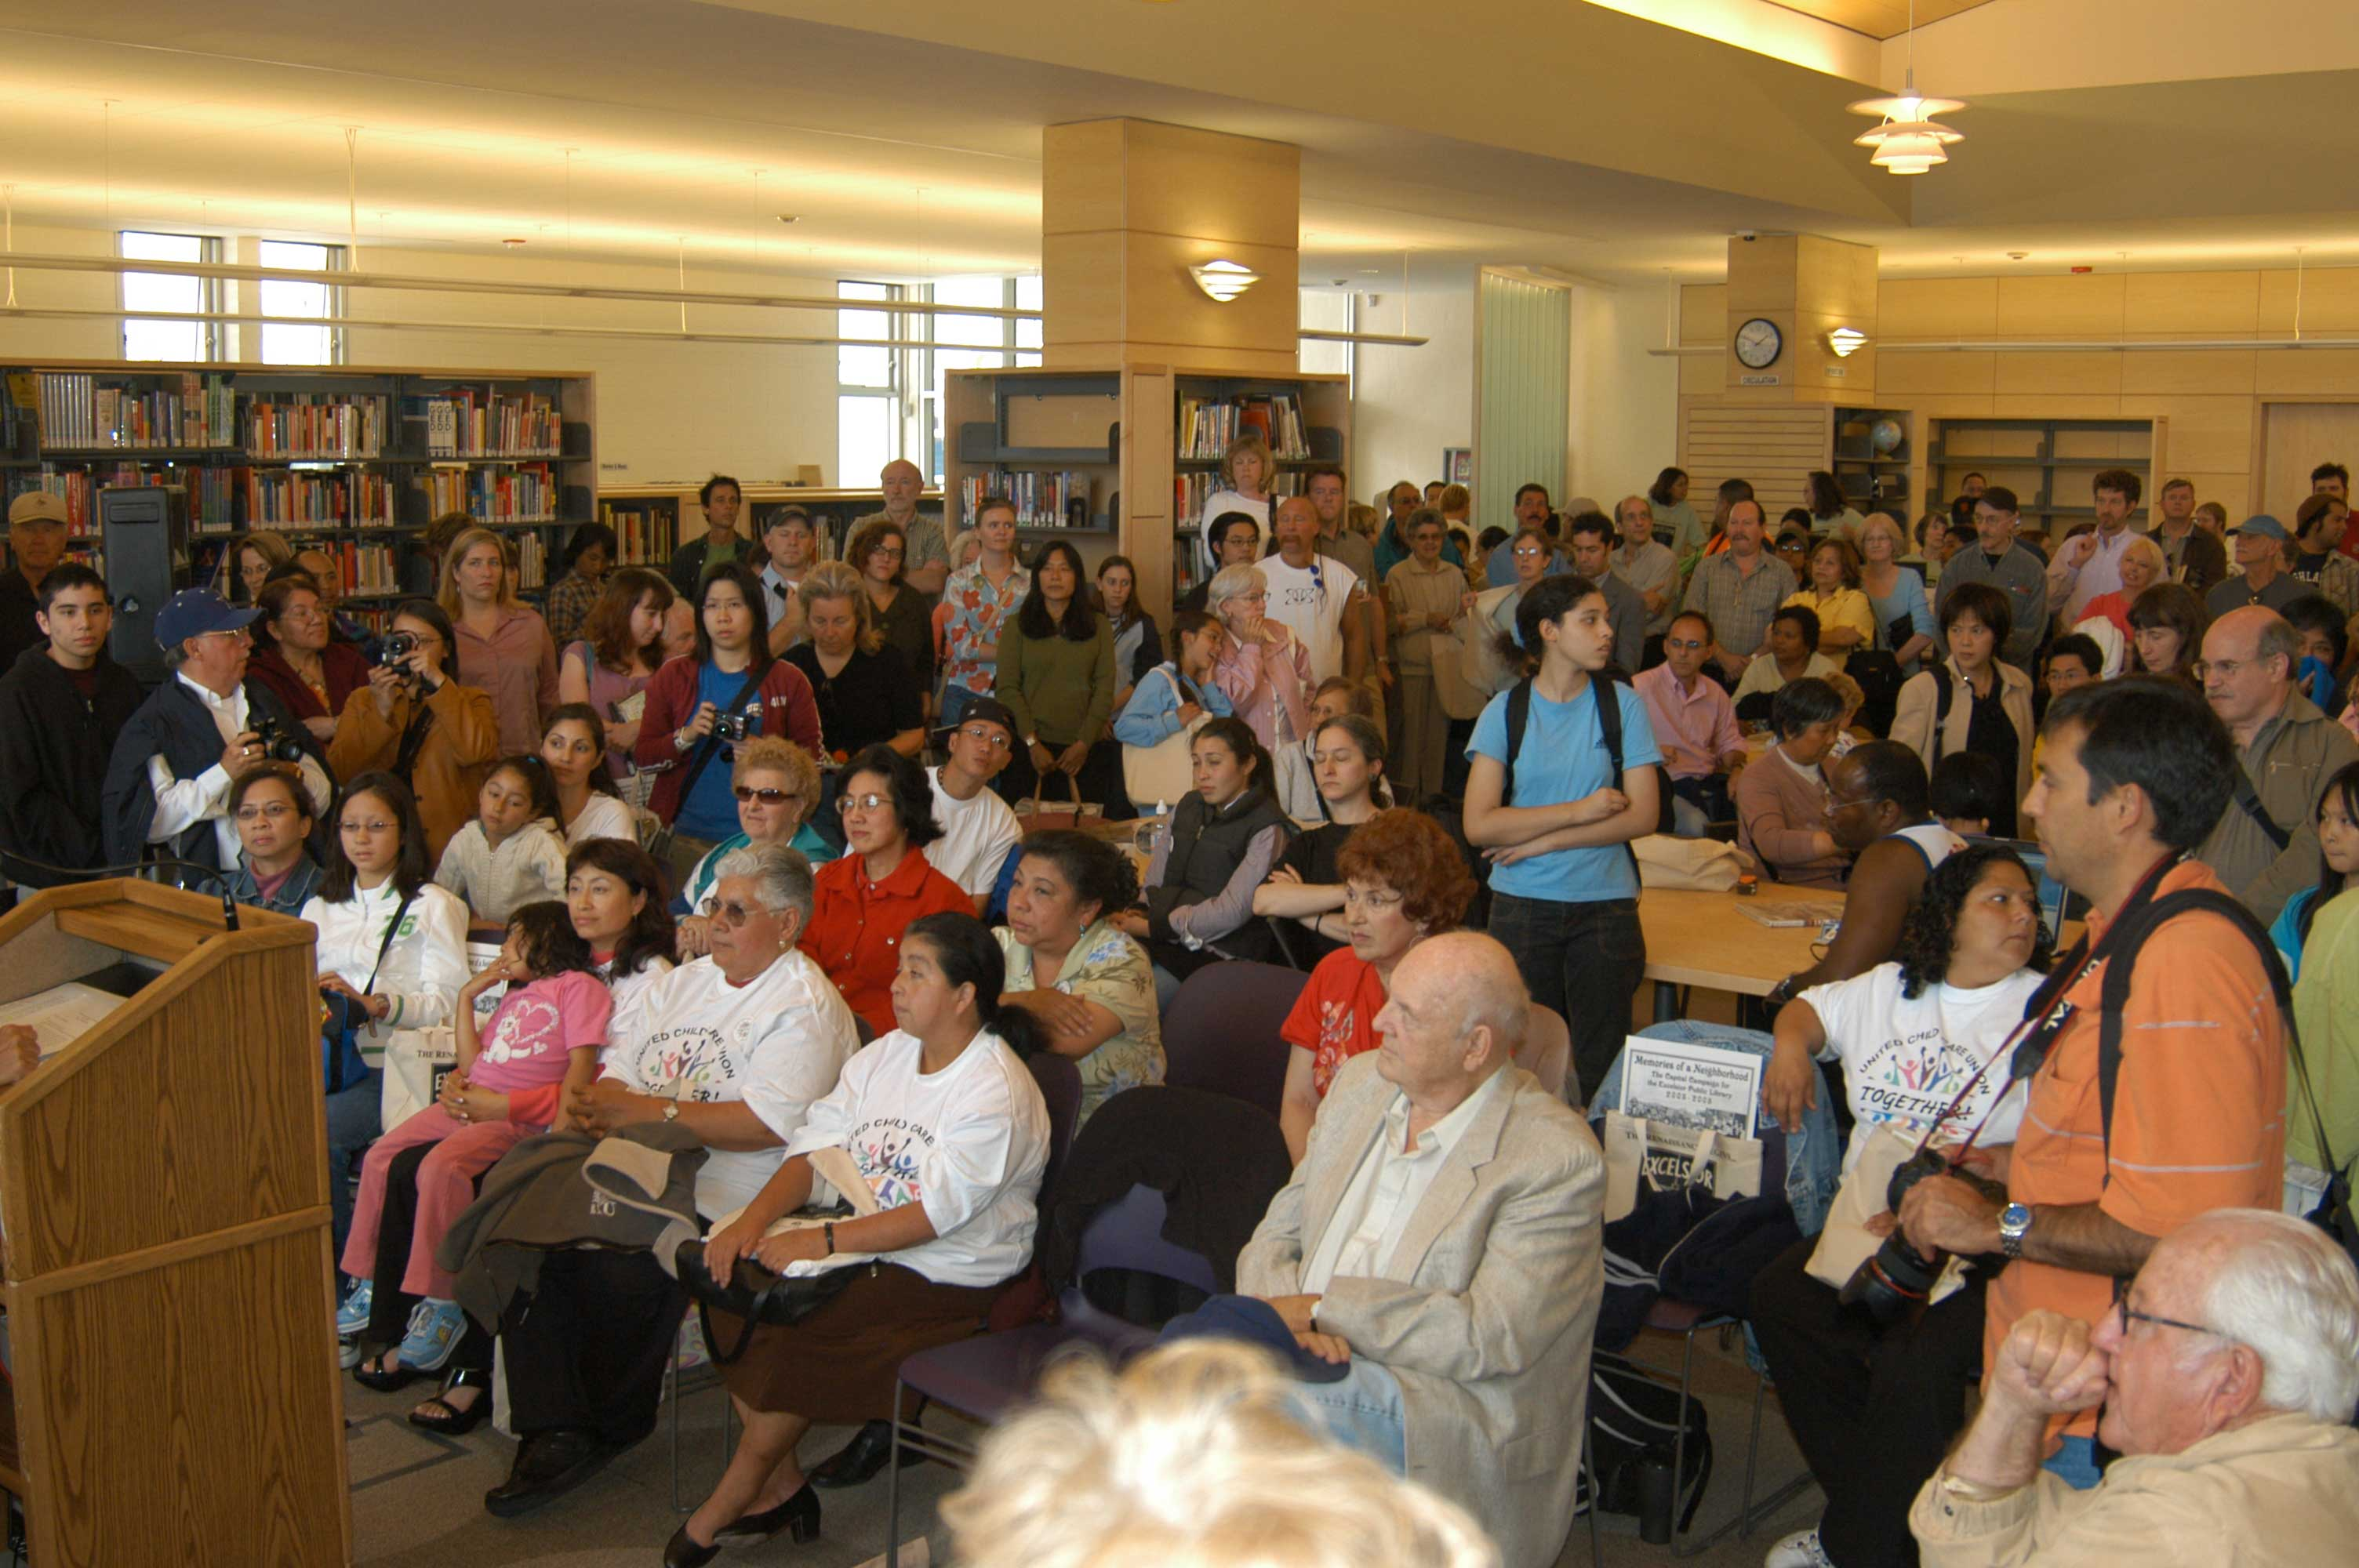 Crowd inside the Excelsior Branch